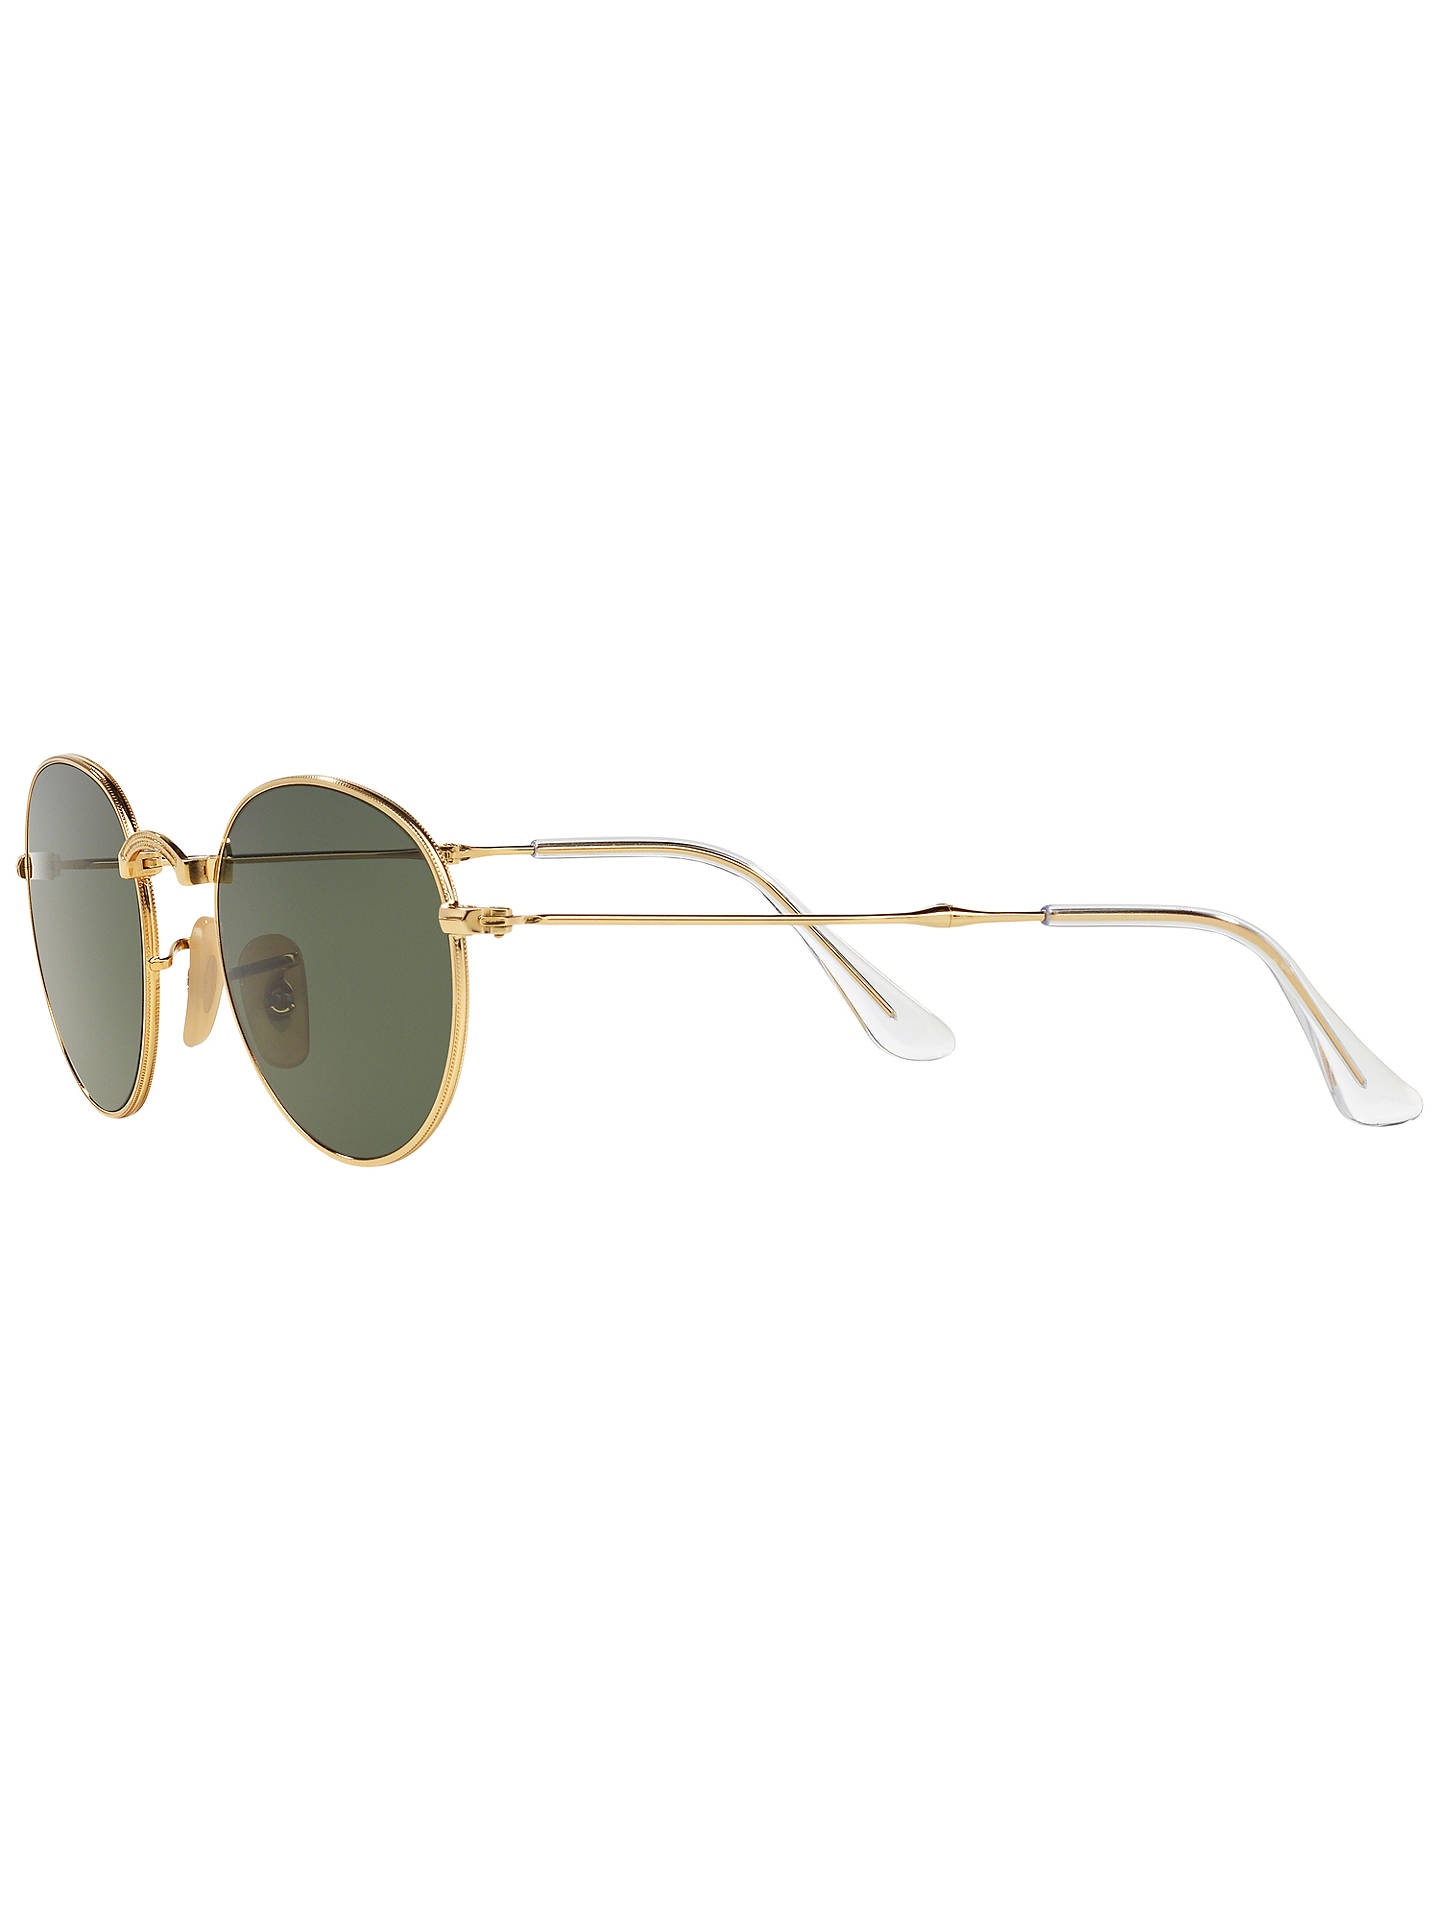 44a72afc62f ... Buy Ray-Ban RB3532 Round Metal Folding Sunglasses